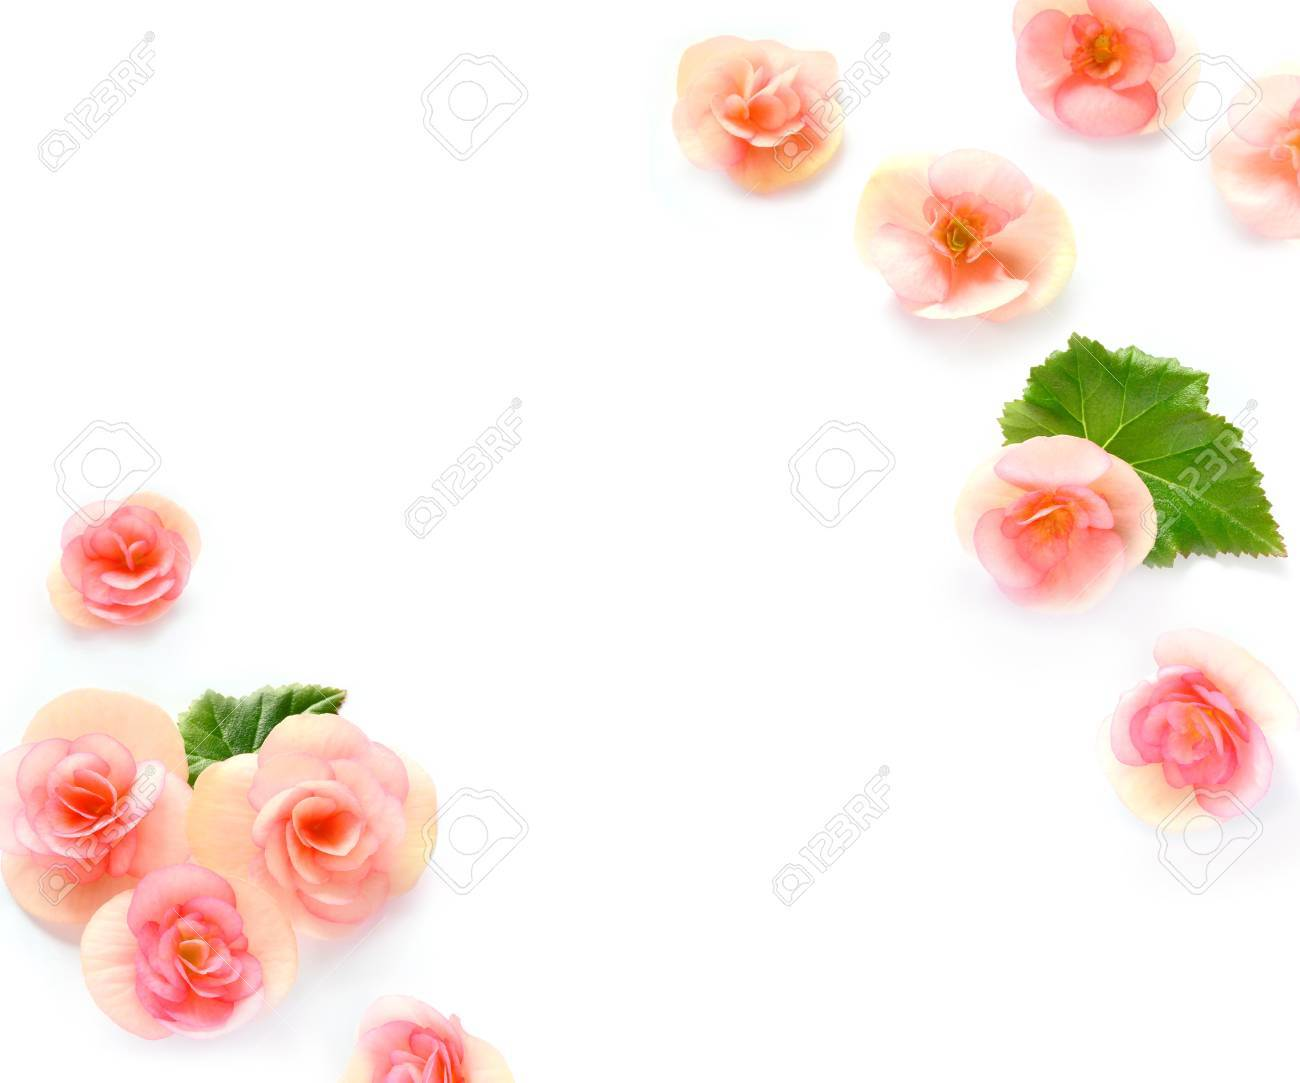 White With Flowers Begonia Background Flat Lat Top View Stock Photo Picture And Royalty Free Image Image 73064214